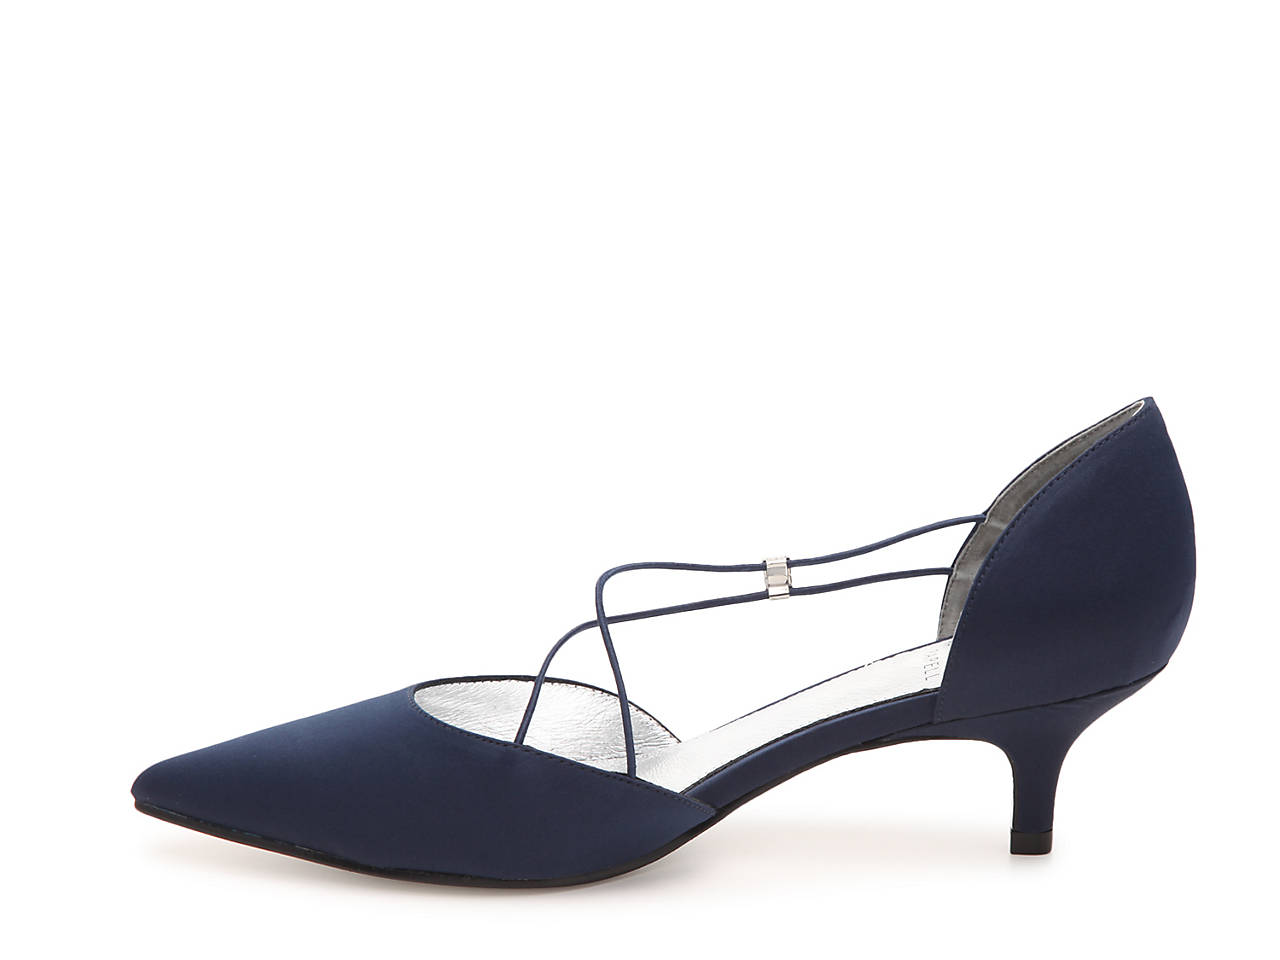 368002b41b120 Adrianna Papell Lacy Pump Women's Shoes | DSW